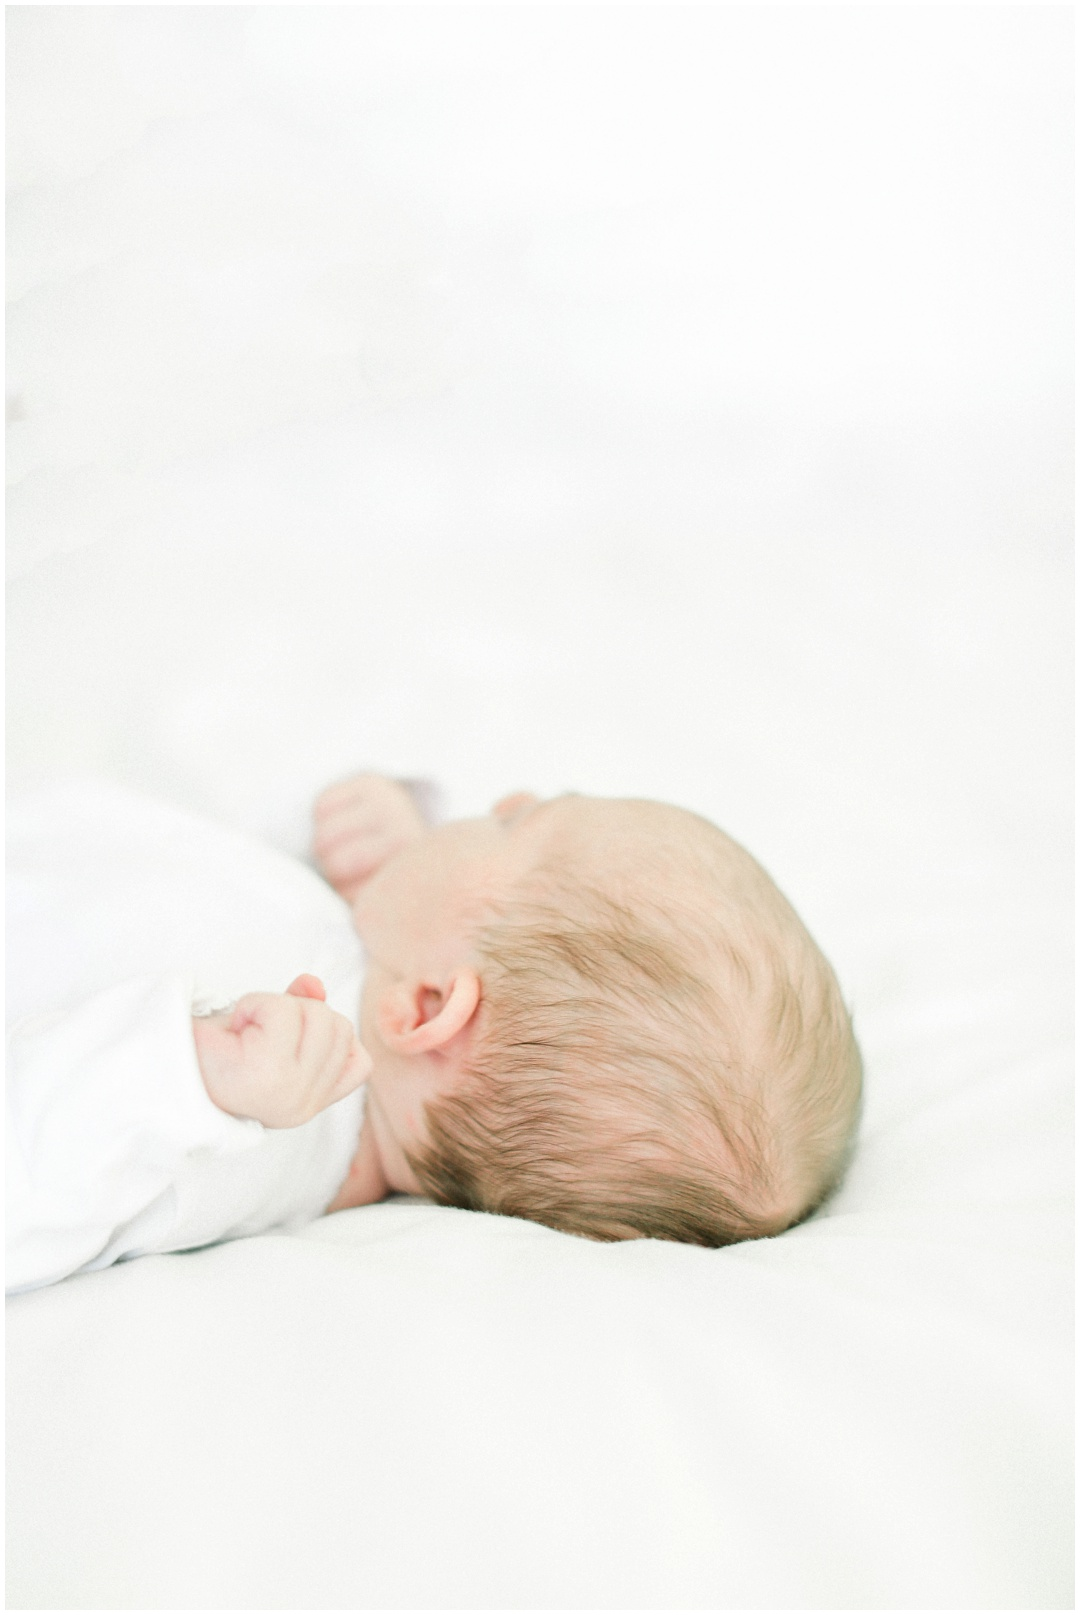 Newport_Beach_Newborn_Light_Airy_Natural_Photographer_Newport_Beach_Photographer_Orange_County_Family_Photographer_Cori_Kleckner_Photography_Newport_Beach_Photographer_newborn_Stephanie_Messiter_Steinhafel_David_Steinhafel_3834.jpg